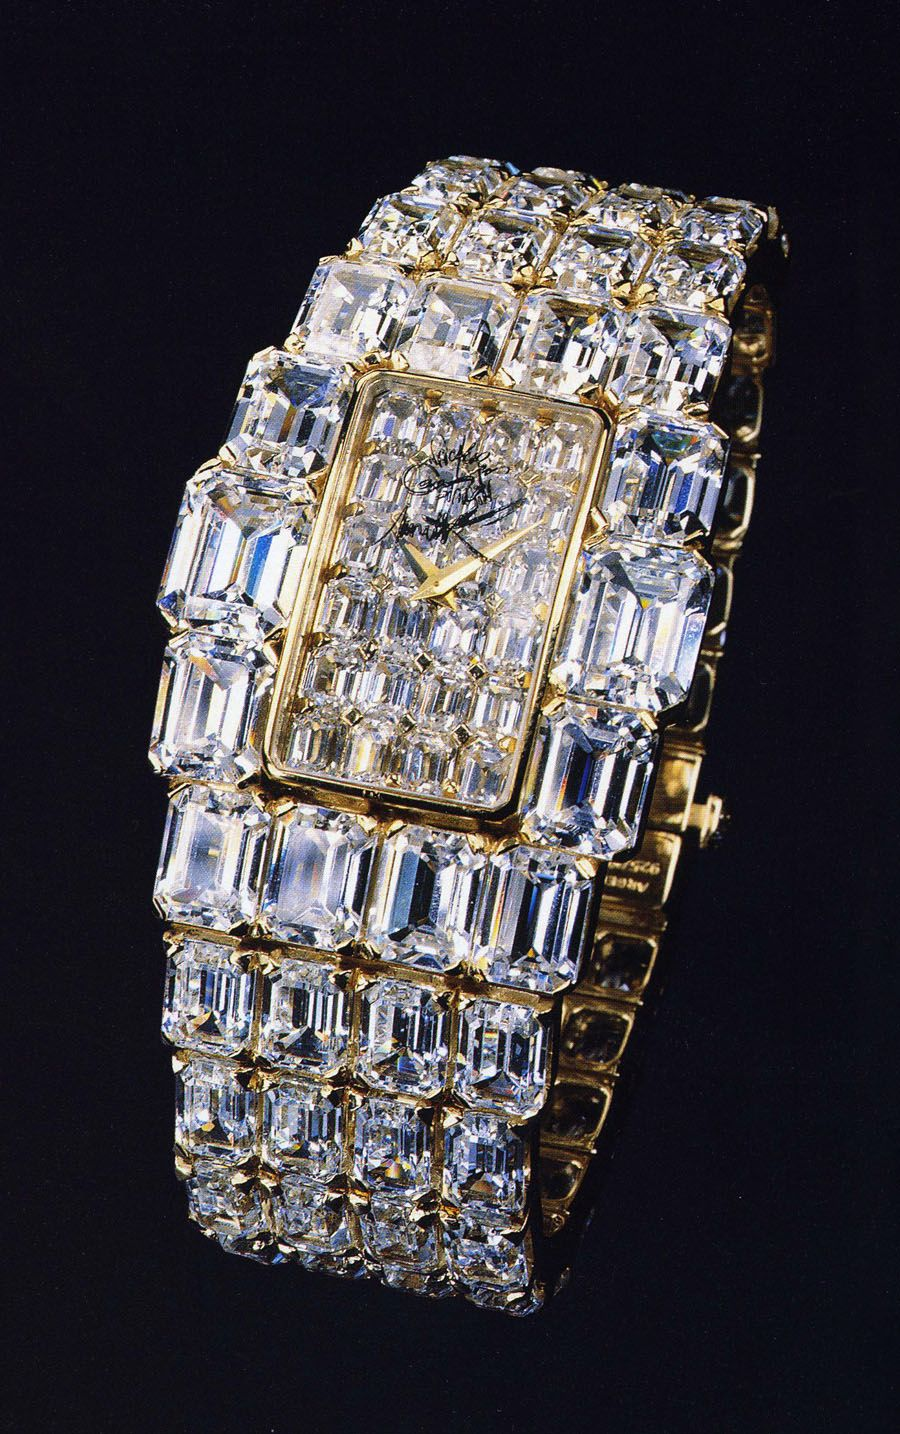 The original 1979 Vacheron Constantin Kallista. At £5 million, it was the most expensive watch ever made at the time and inspired a series of high jewellery diamond watches named Kalla.